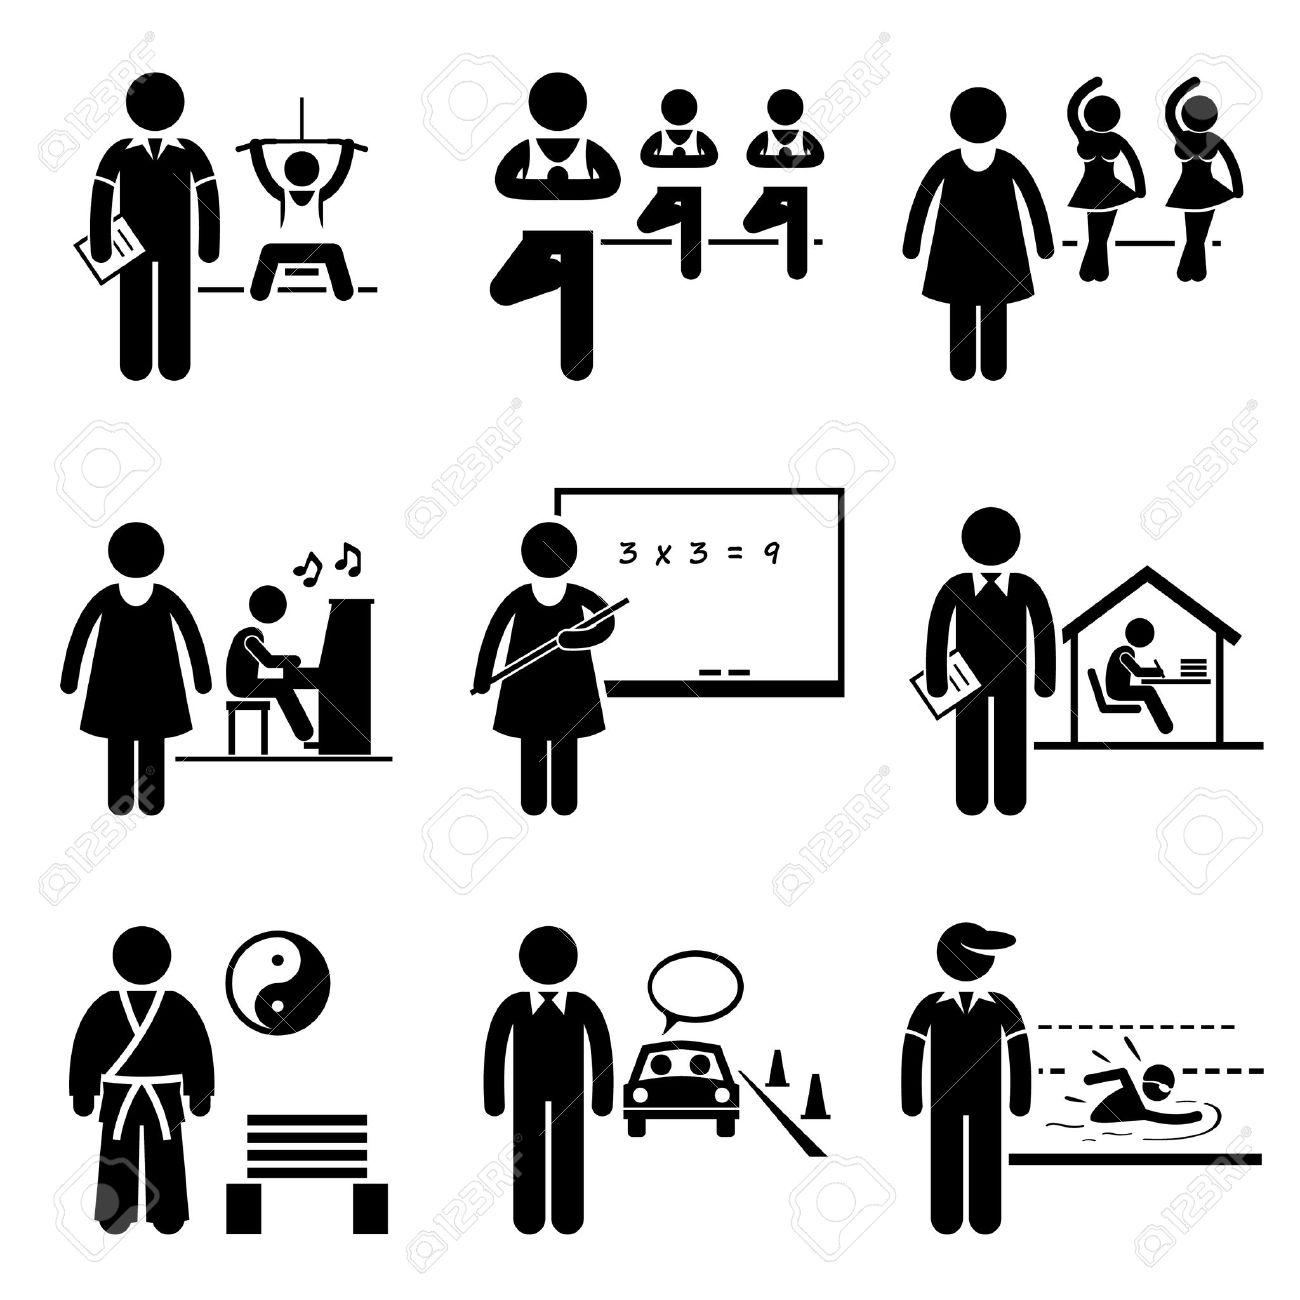 Coach Instructor Trainer Teacher Jobs Occupations Careers - Gym, Yoga, Dancing, Music, School Teacher, Home Tutor, Martial Arts, Driving, Swimming - Stick Figure Pictogram Stock Vector - 24227343